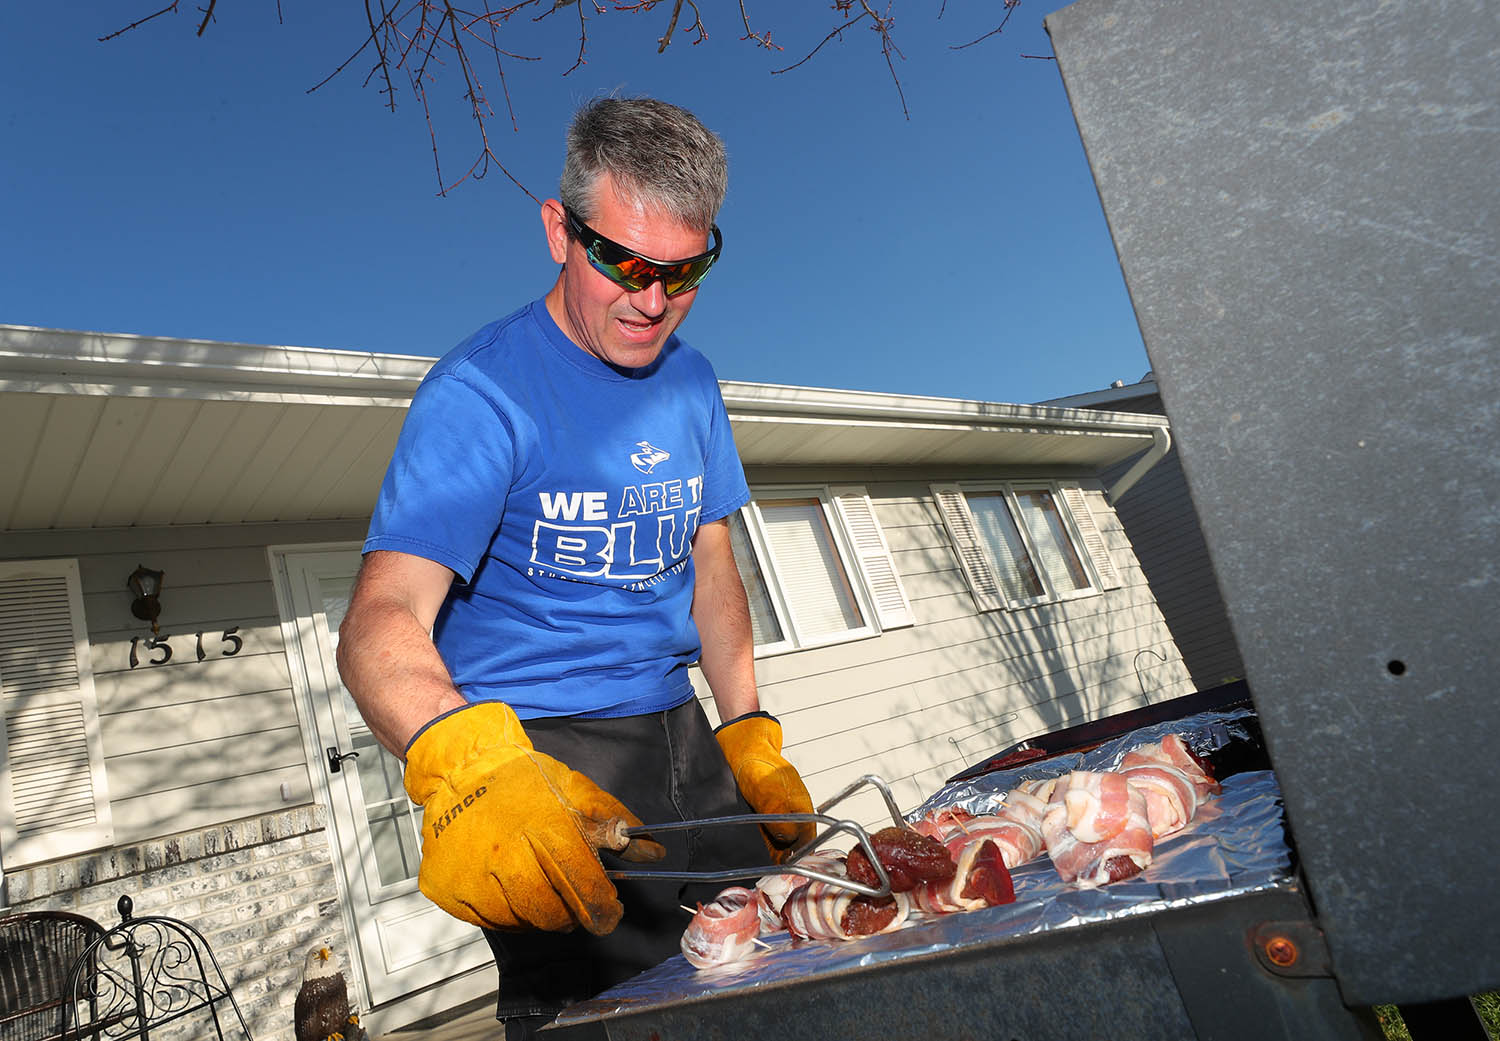 """UNK exercise science professor Greg Brown grills bacon-wrapped venison steaks in his front yard Tuesday evening during the first """"front porch celebration"""" in Kearney. Brown started the event so neighbors can remain connected during the coronavirus outbreak while following social distancing guidelines. (Photos by Corbey R. Dorsey, UNK Communications)"""